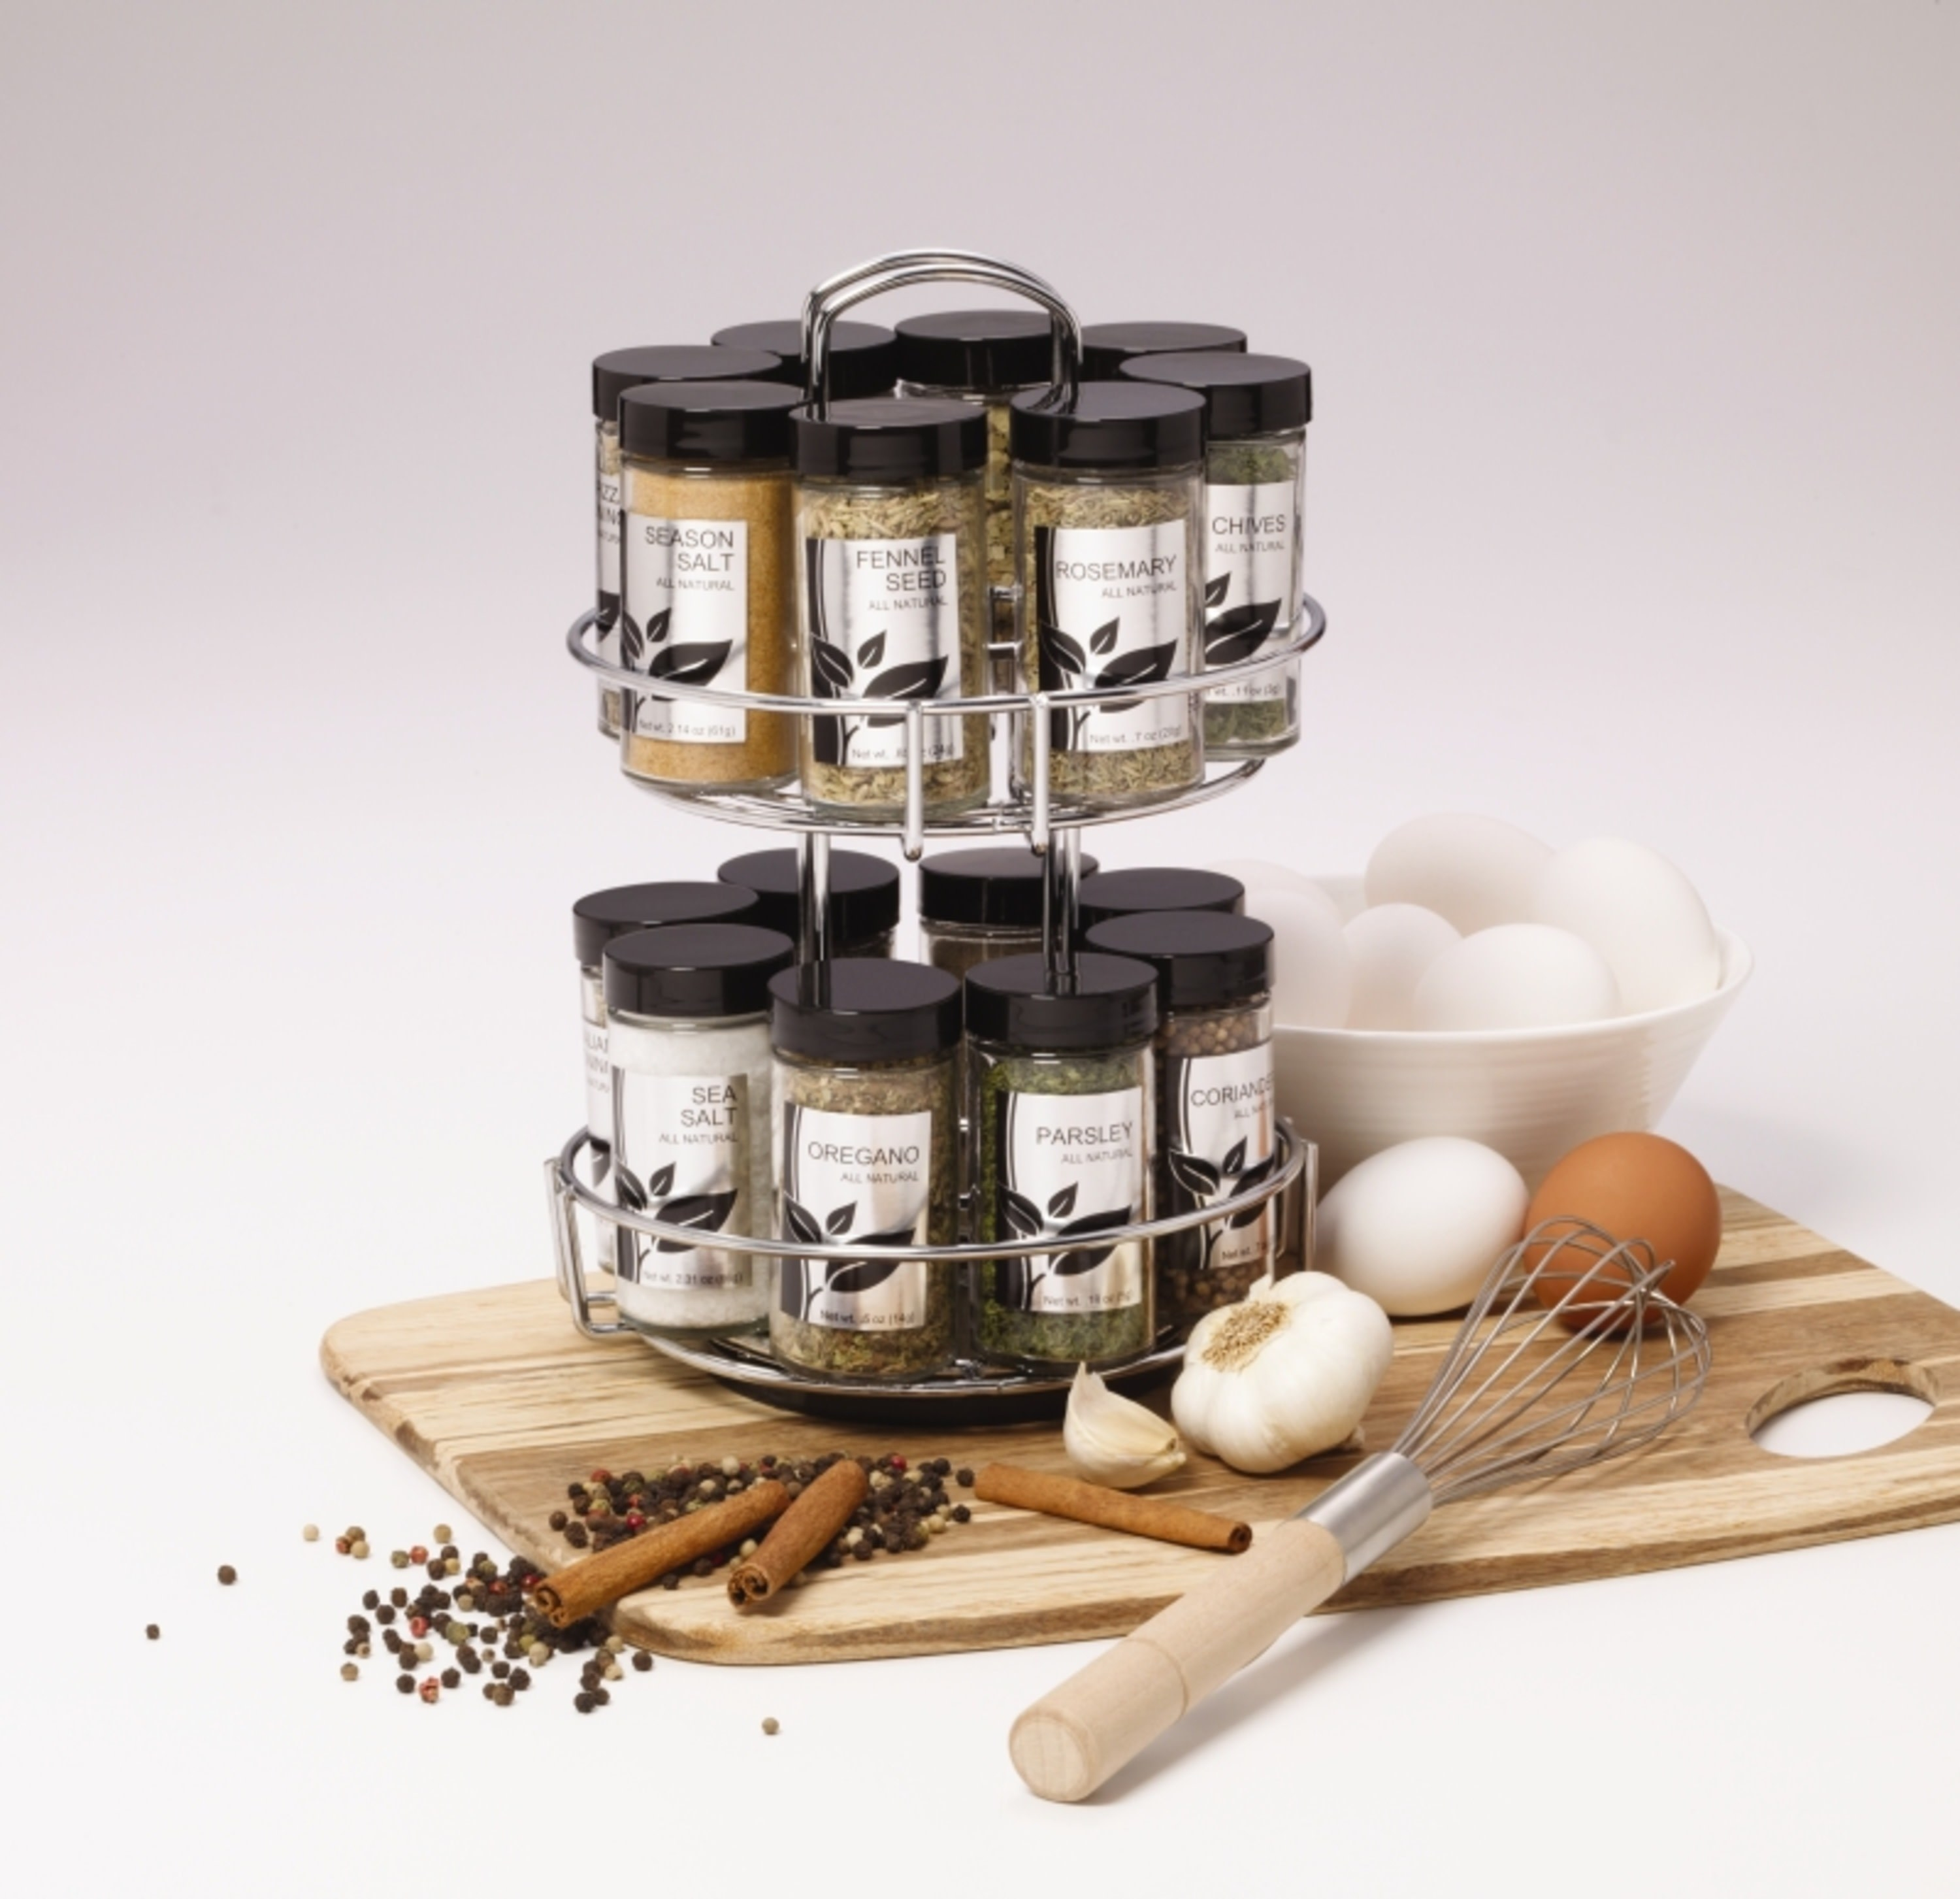 spice rack filled with spices on the kitchen counter